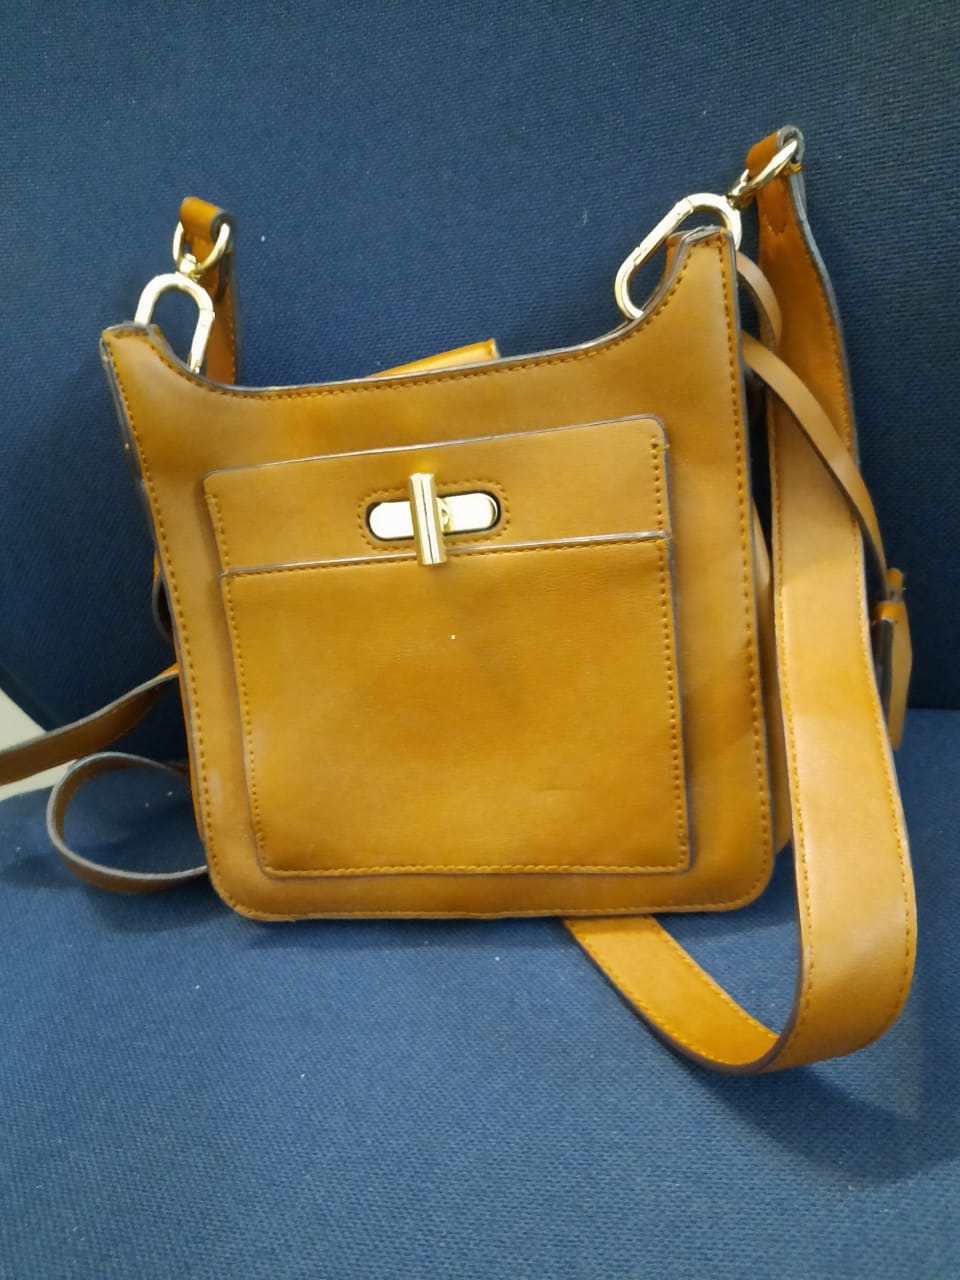 Branded Preloved Bag